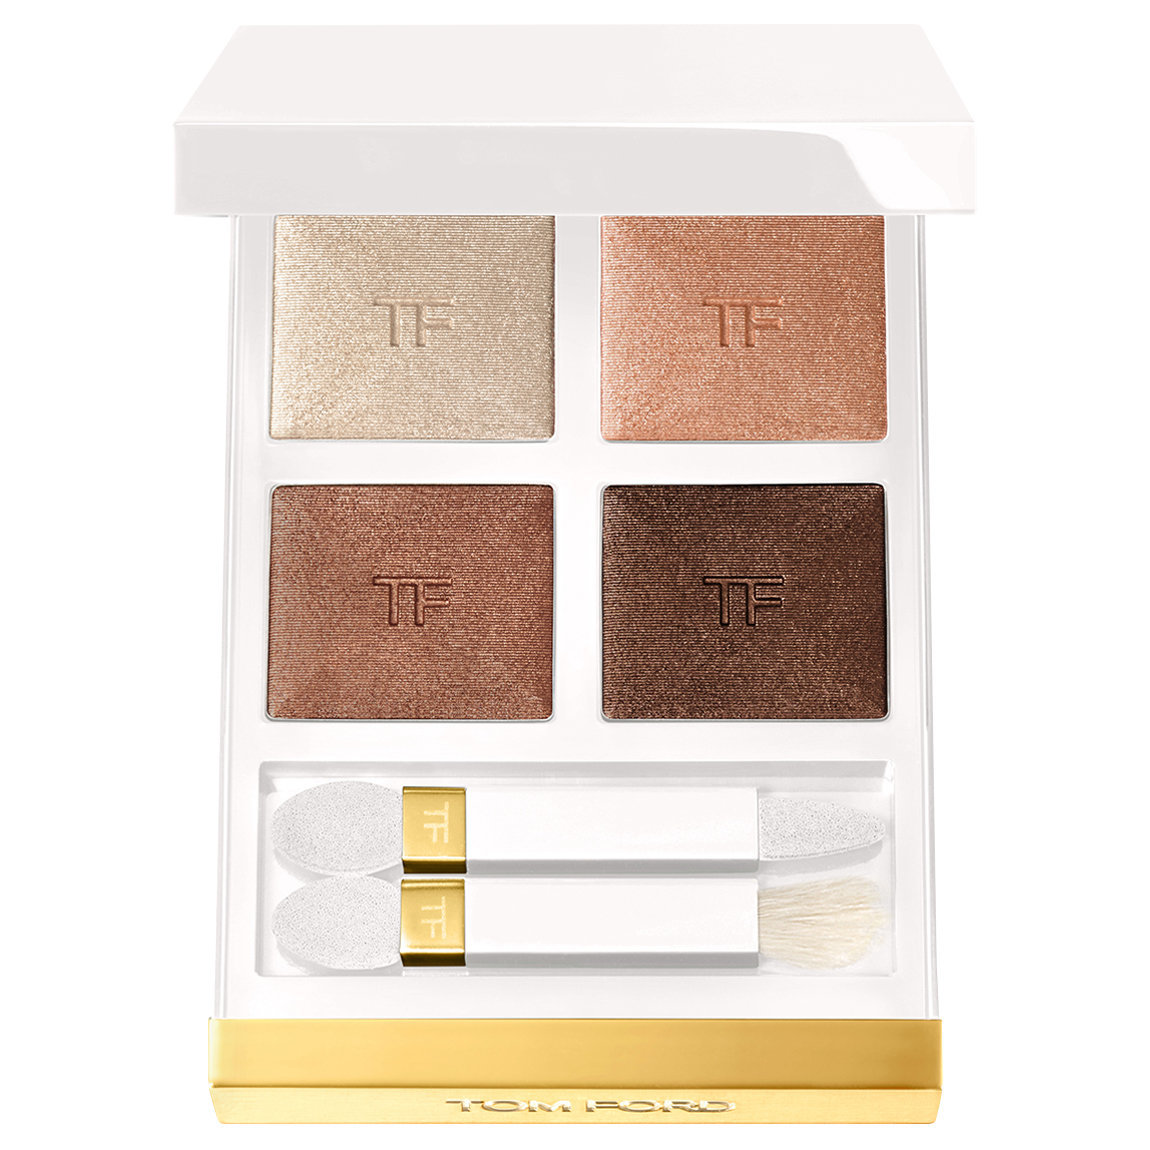 TOM FORD Soleil Neige Eye Color Quad alternative view 1 - product swatch.